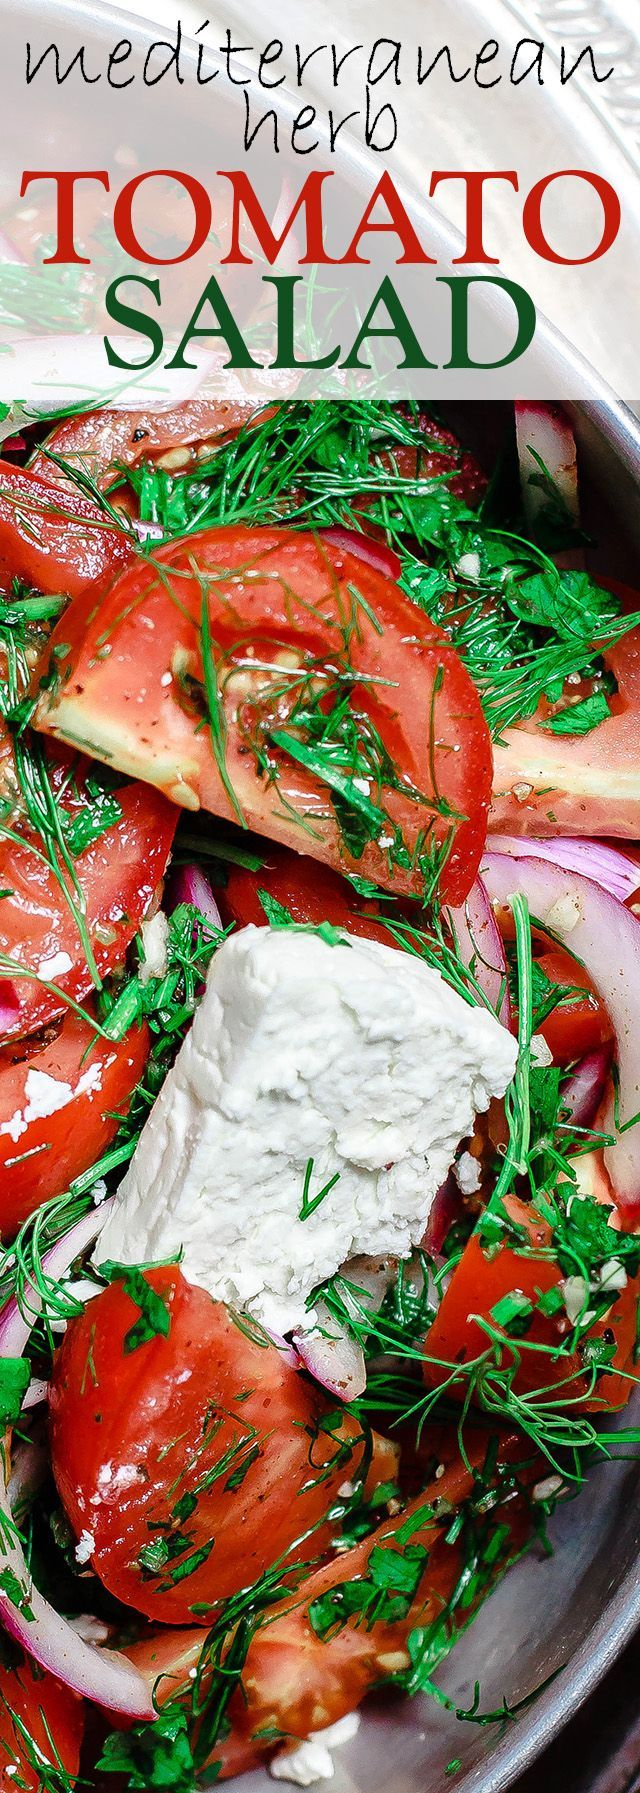 Mediterranean Fresh Herb Tomato Salad | The Mediterranean Dish. Tomatoes and red onions with fresh parsley and dill, doused in citrus and olive oil. Vegan. Gluten-free. Click the image for the recipe and visit TheMediterraneanD... for more healthy recipes!